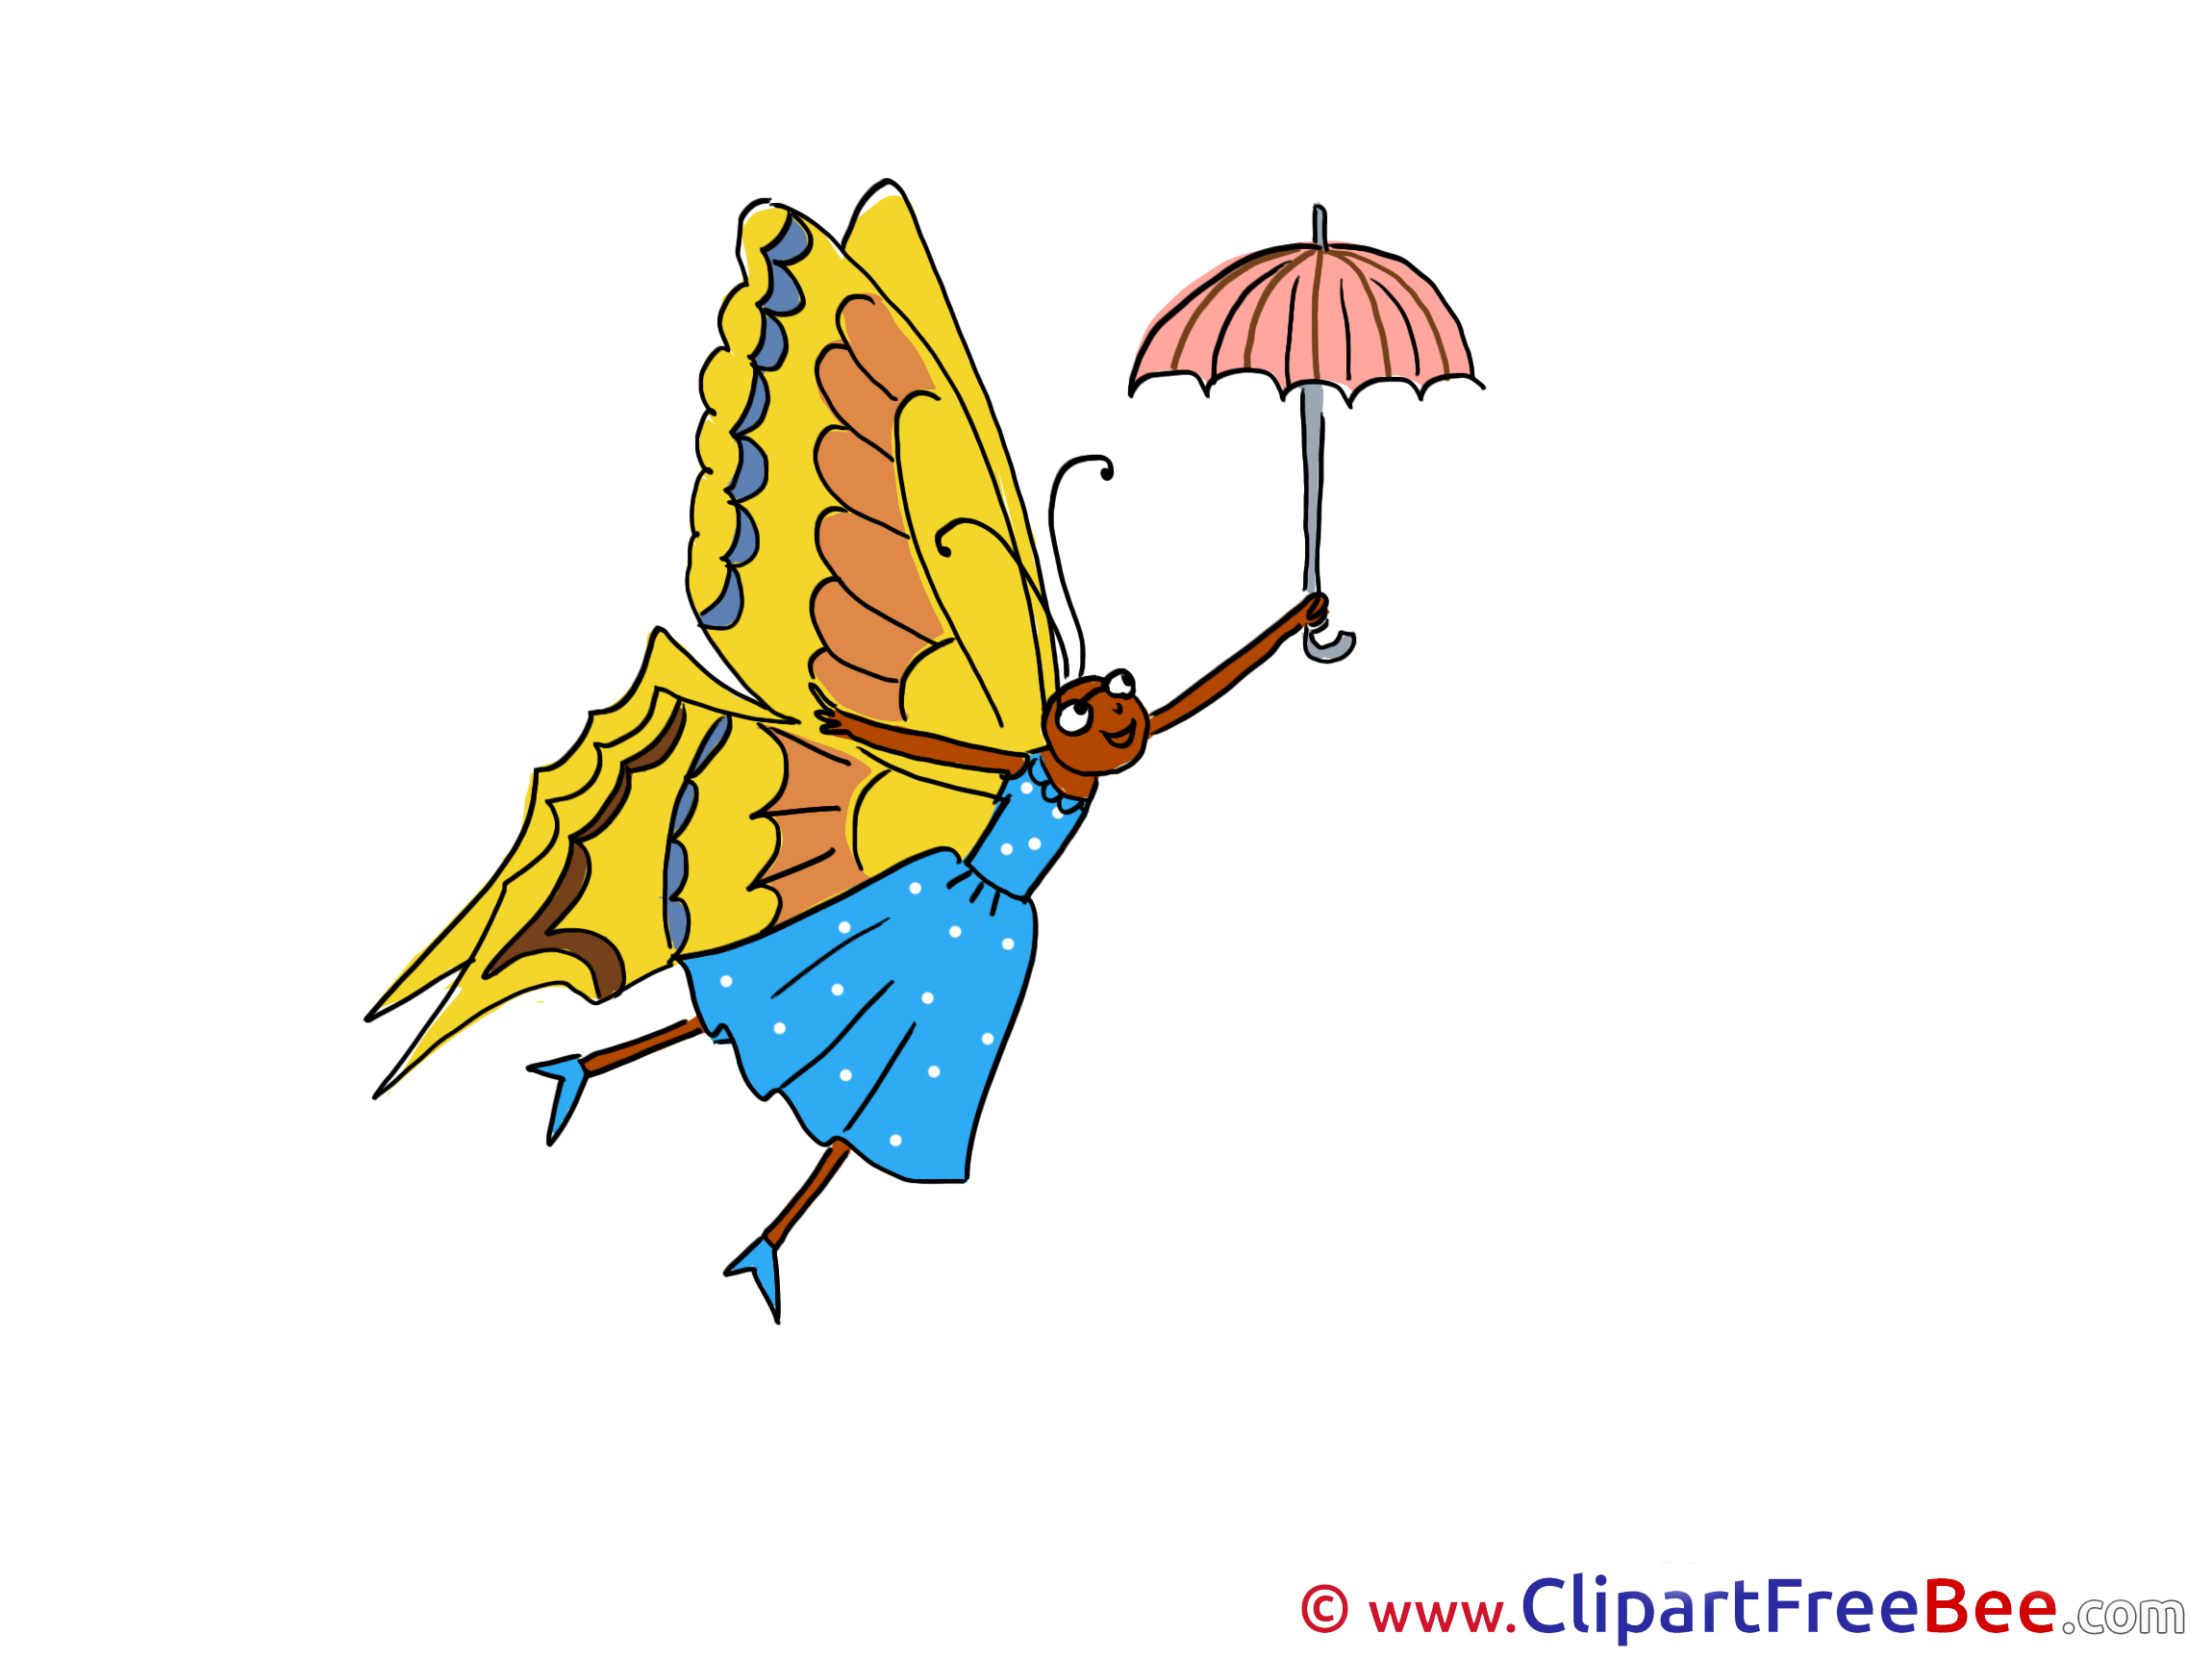 Umbrella Butterfly printable Illustrations for free